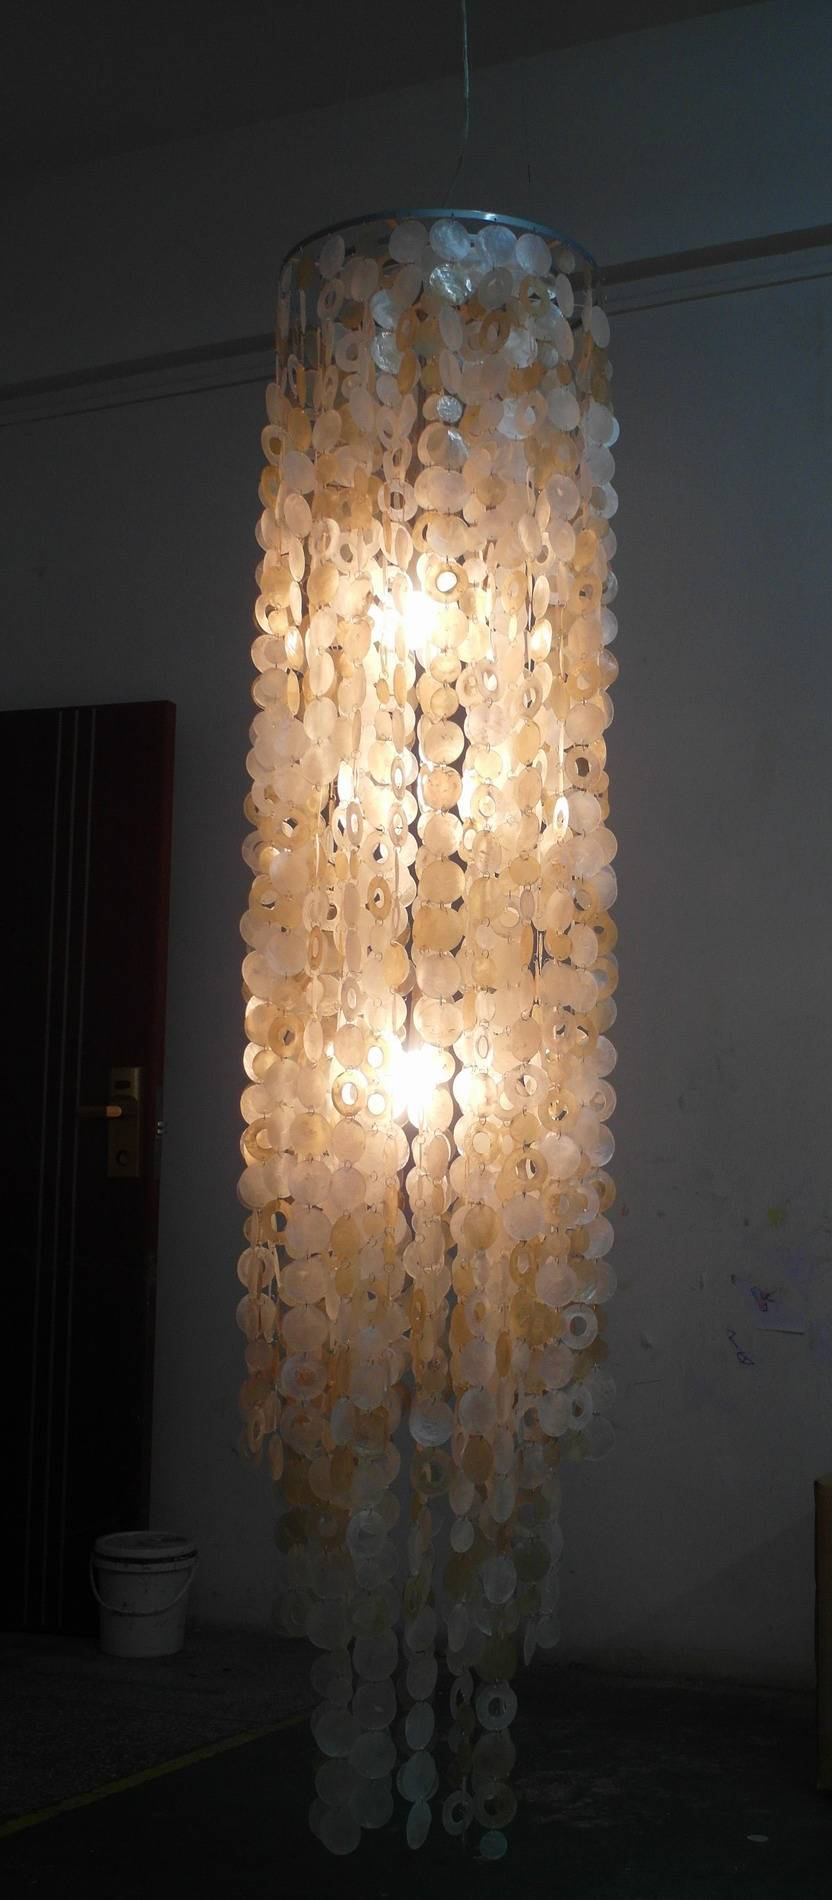 shell chandeliers/ Hanging Capiz Shell Pendant Chandelier/Capiz Shell Pendant Light Home Products/ l